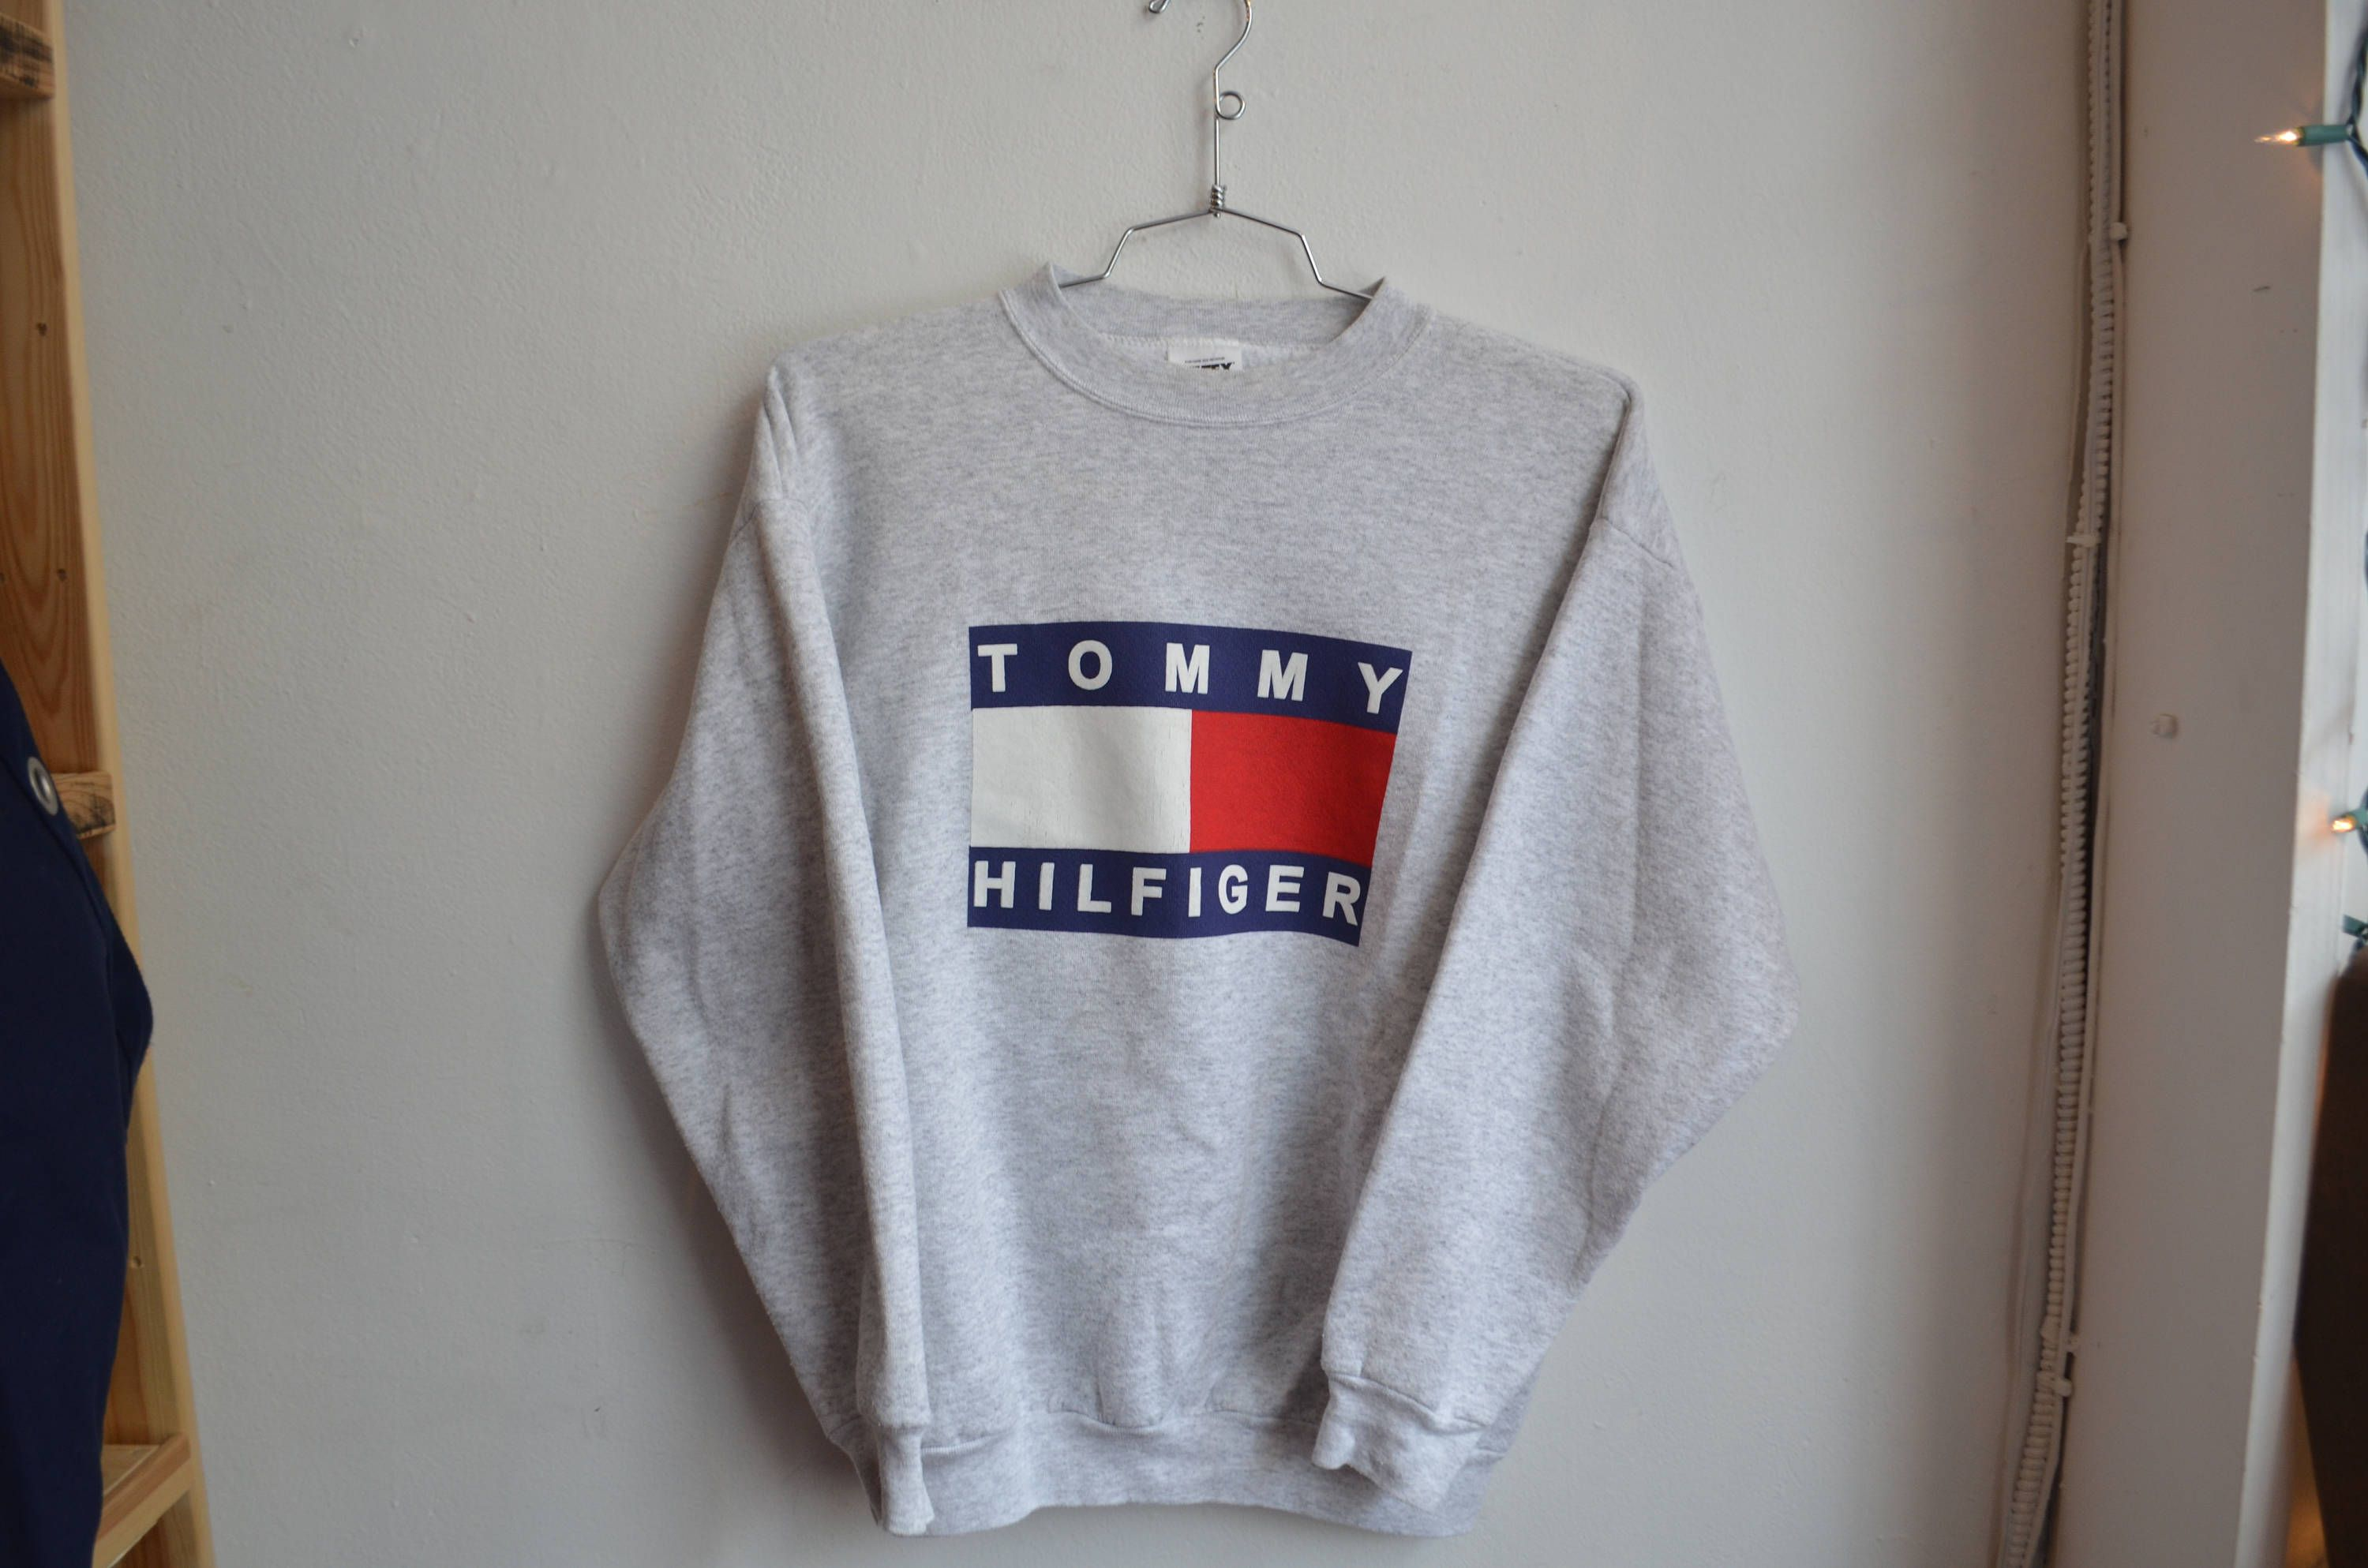 4c63cba4 Vintage 90s Bootleg Tommy Hilfiger Big Flag Unisex Crewneck Sweatshirt by  RadOTR on Etsy